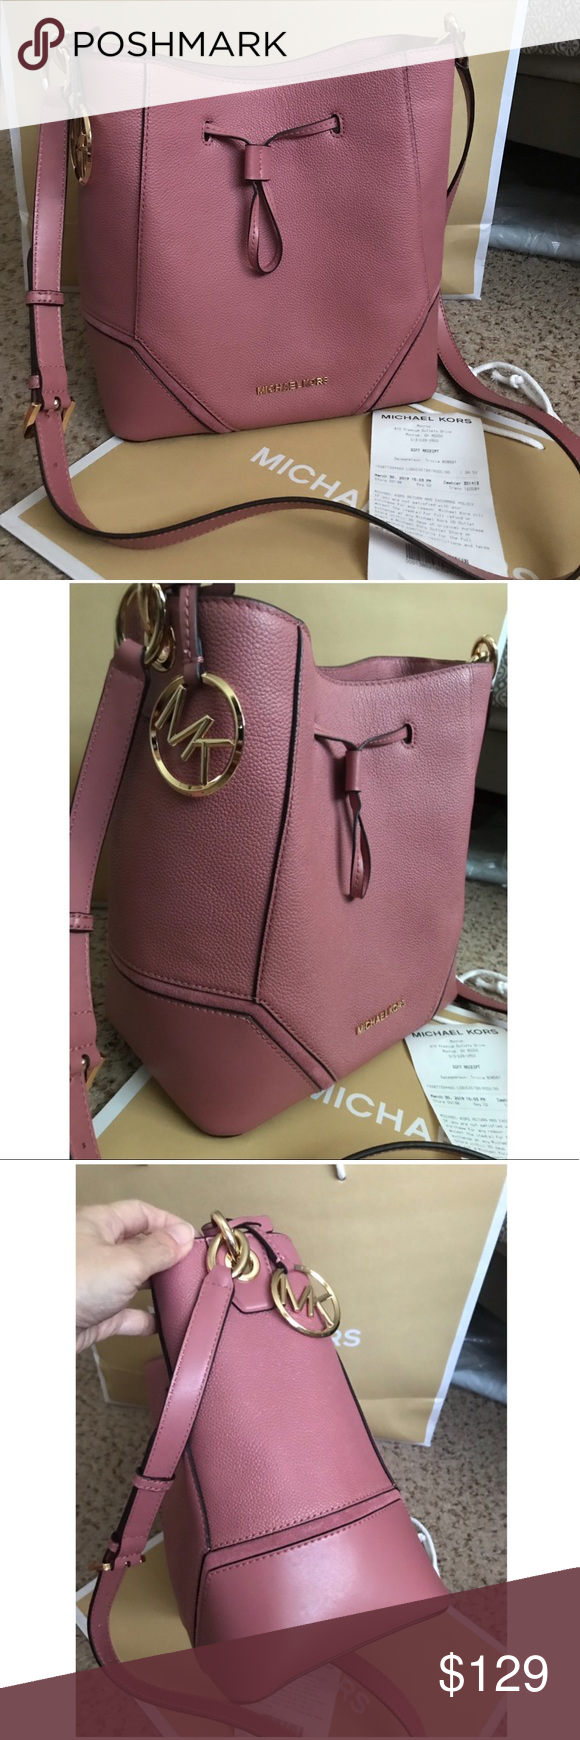 98acb9709dfb Michael Kors Nicole Large Bucket crossbody in Rose Michael Kors Nicole Large  Bucket Bag Rose With Gold Hardware Pebble Leather in Rose · Measurement: H  9